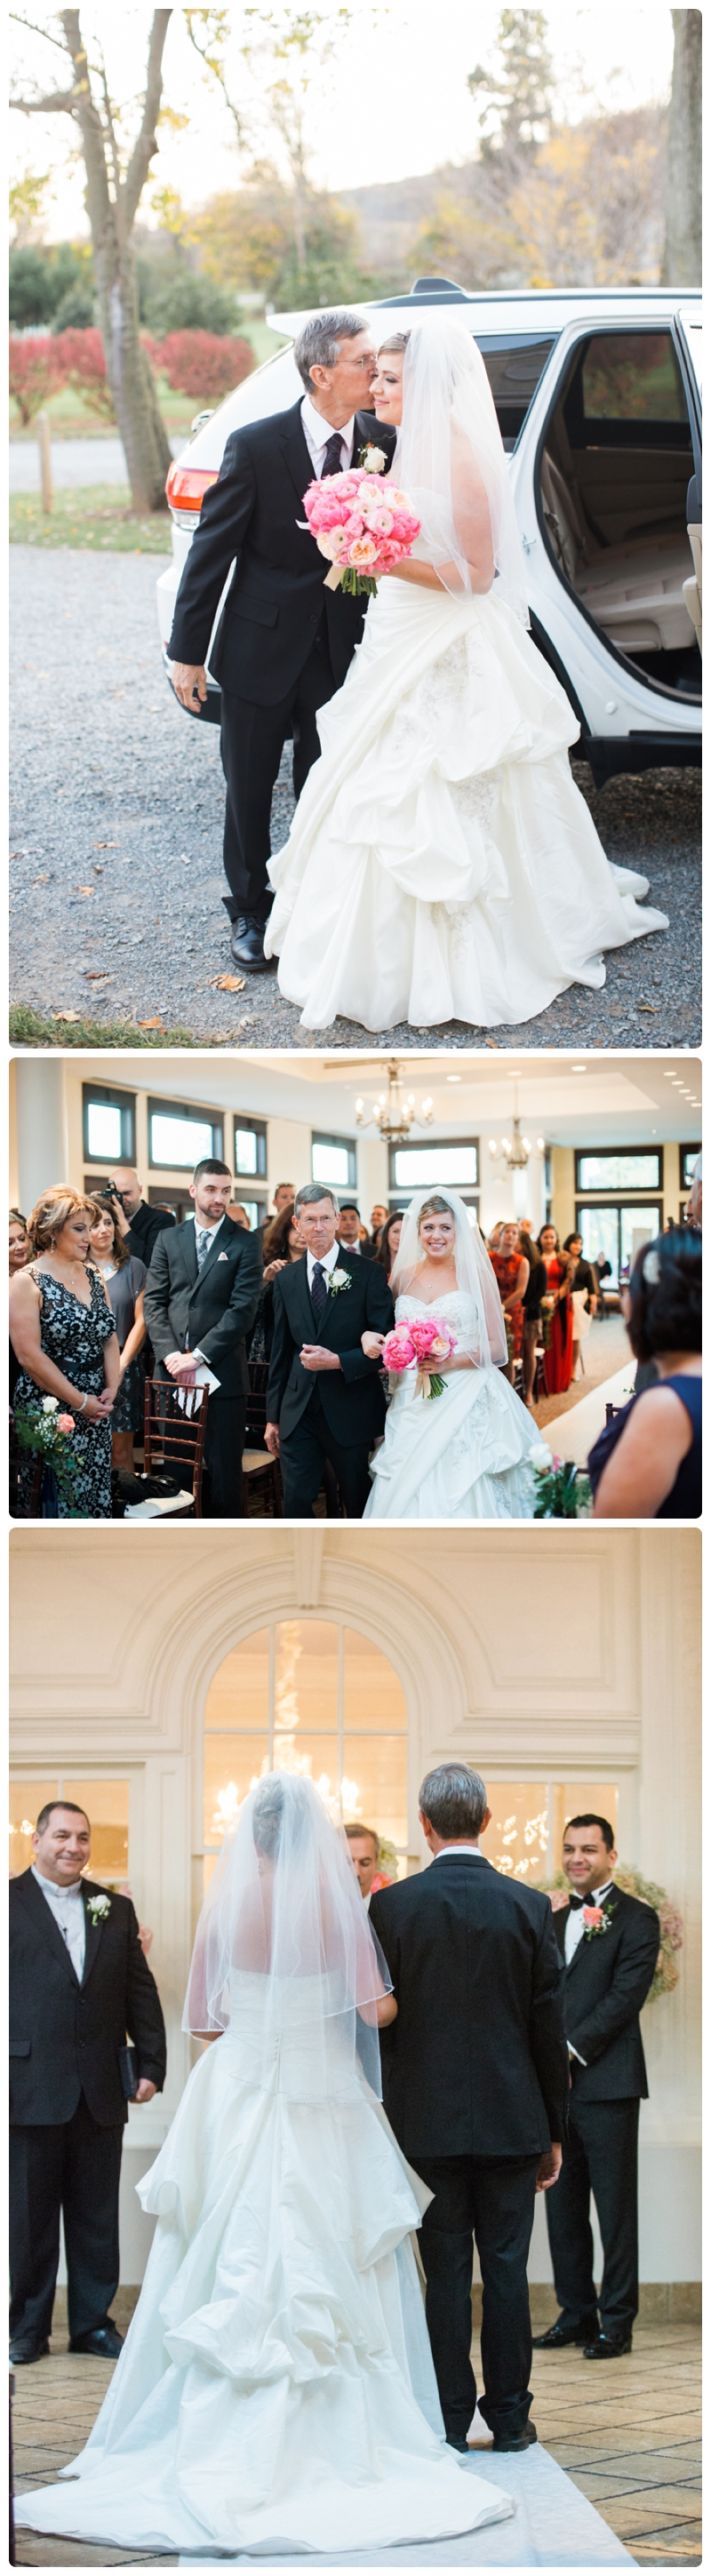 Wedding at Whitehall Estate in Bluemont Virginia by Rachael Foster Photography_0044.jpg